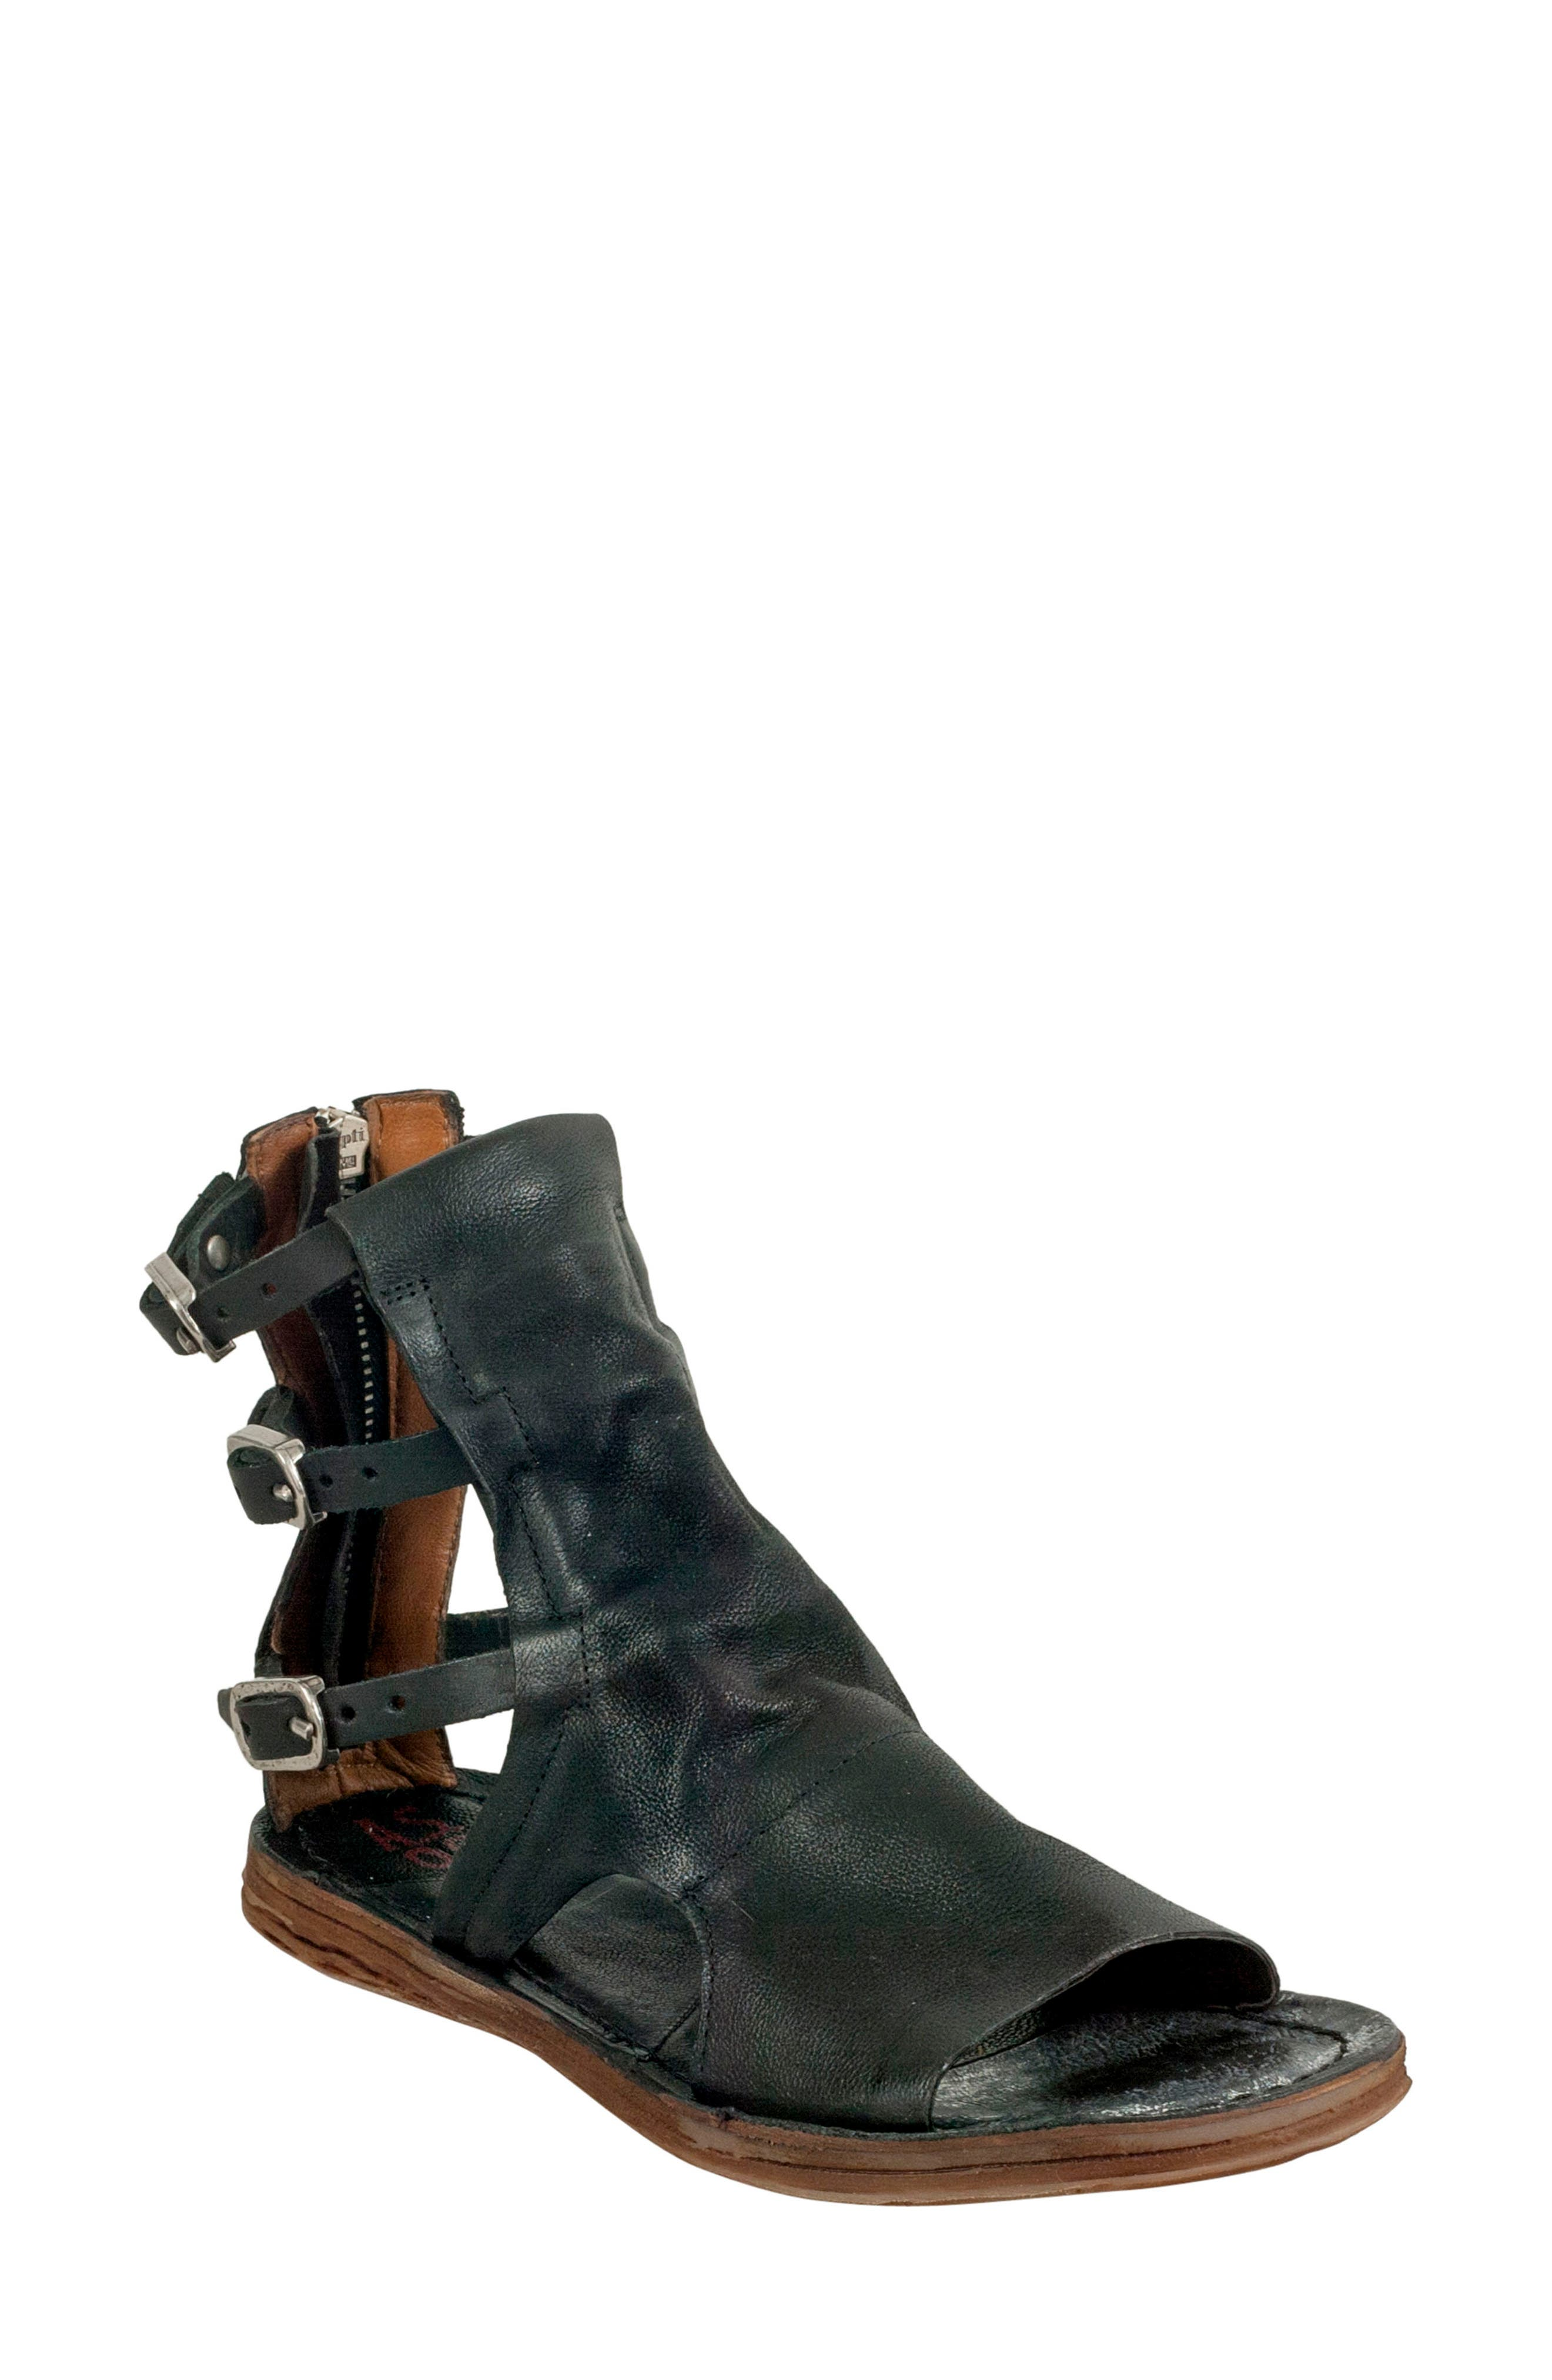 Ryde Sandal,                         Main,                         color, BLACK LEATHER